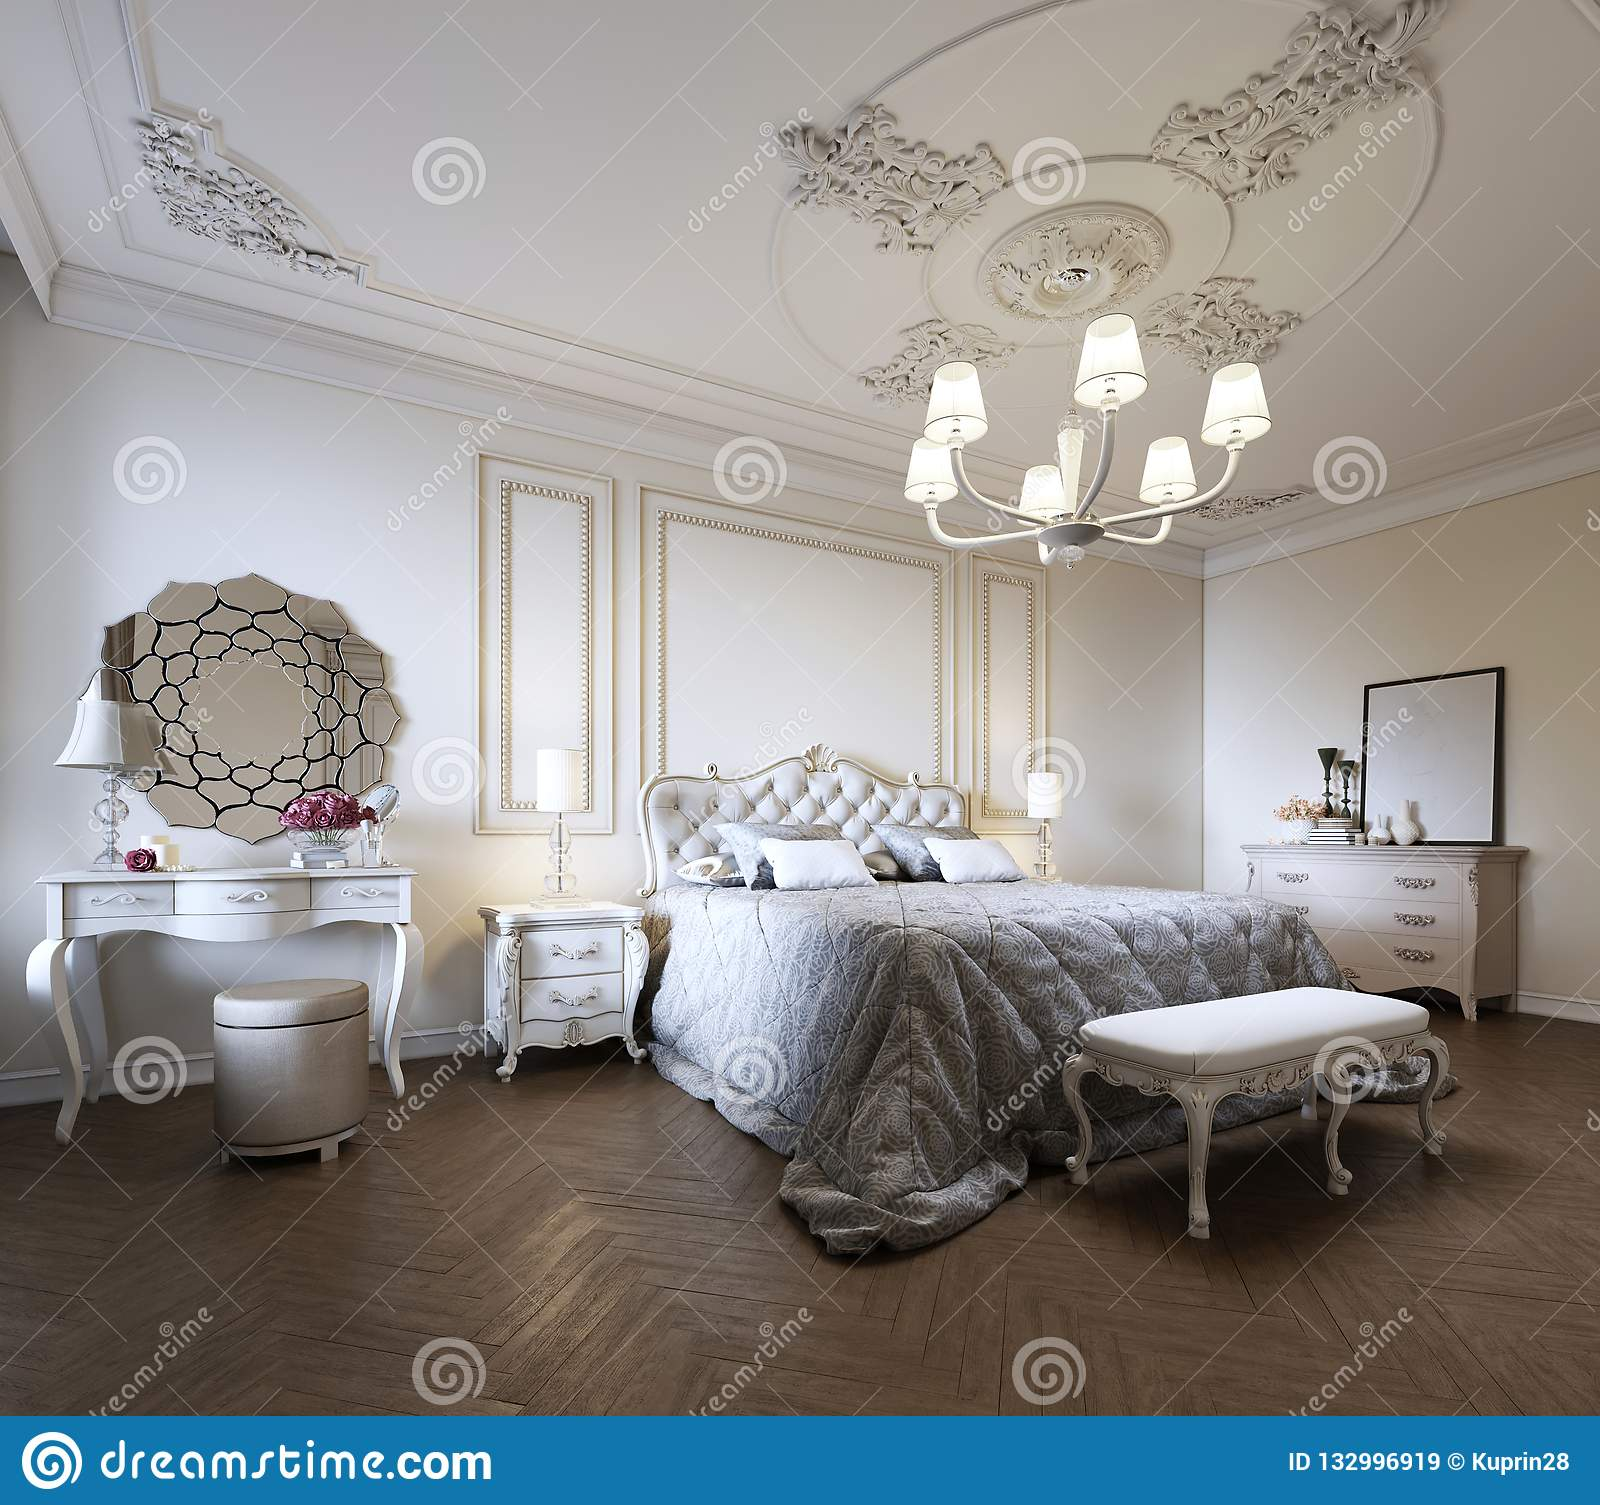 Bedroom Interior Design In A Modern Classic Style Stock